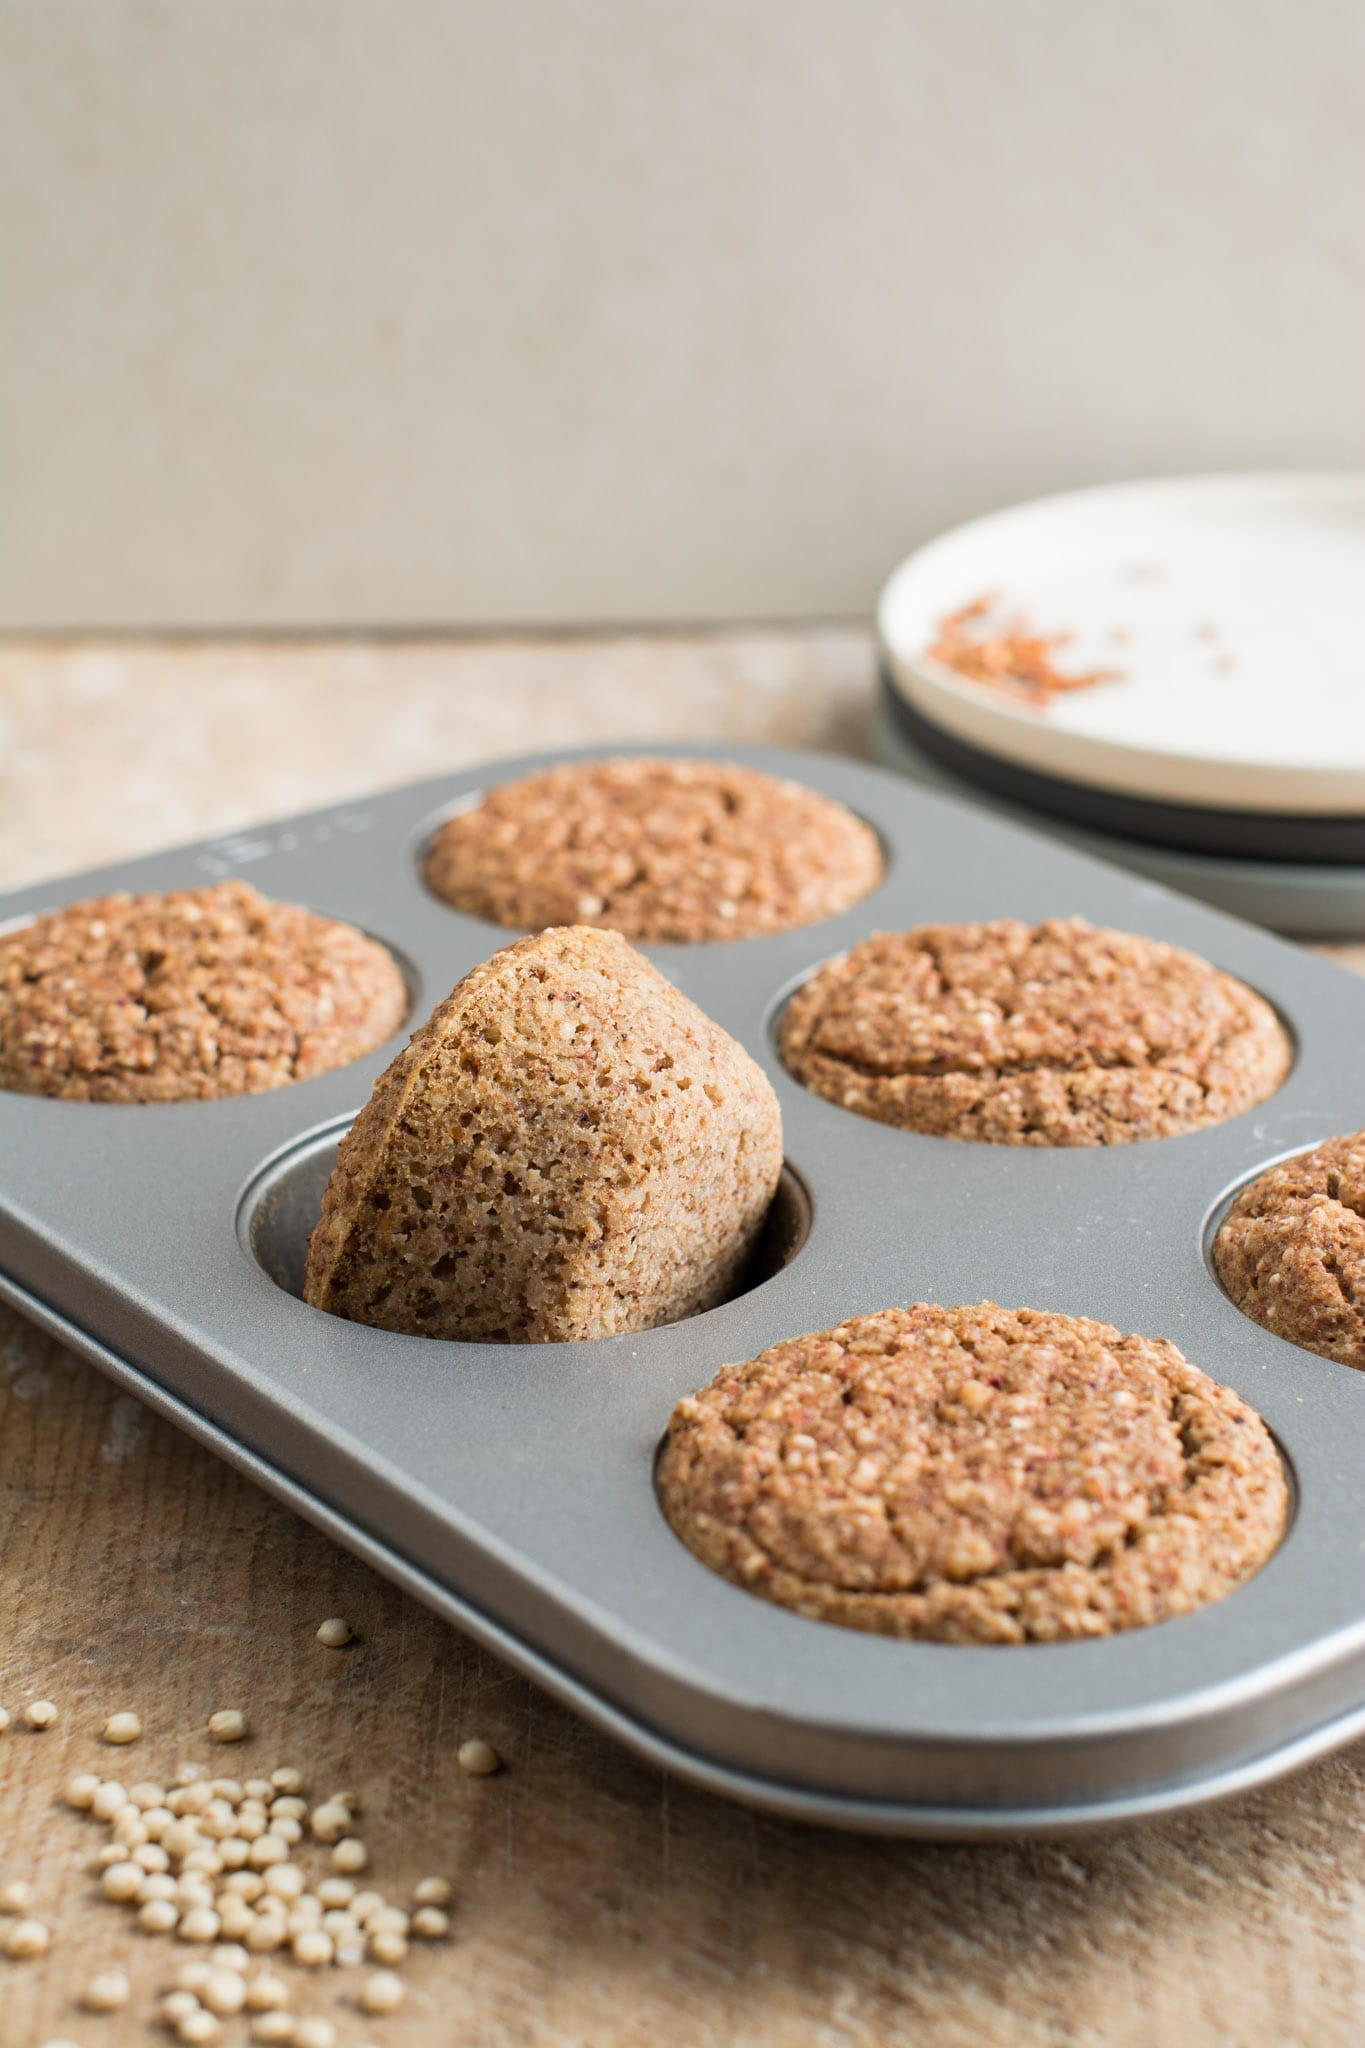 Savoury vegan sorghum muffins that make a perfect healthy breakfast or snack requiring only 5 ingredients.